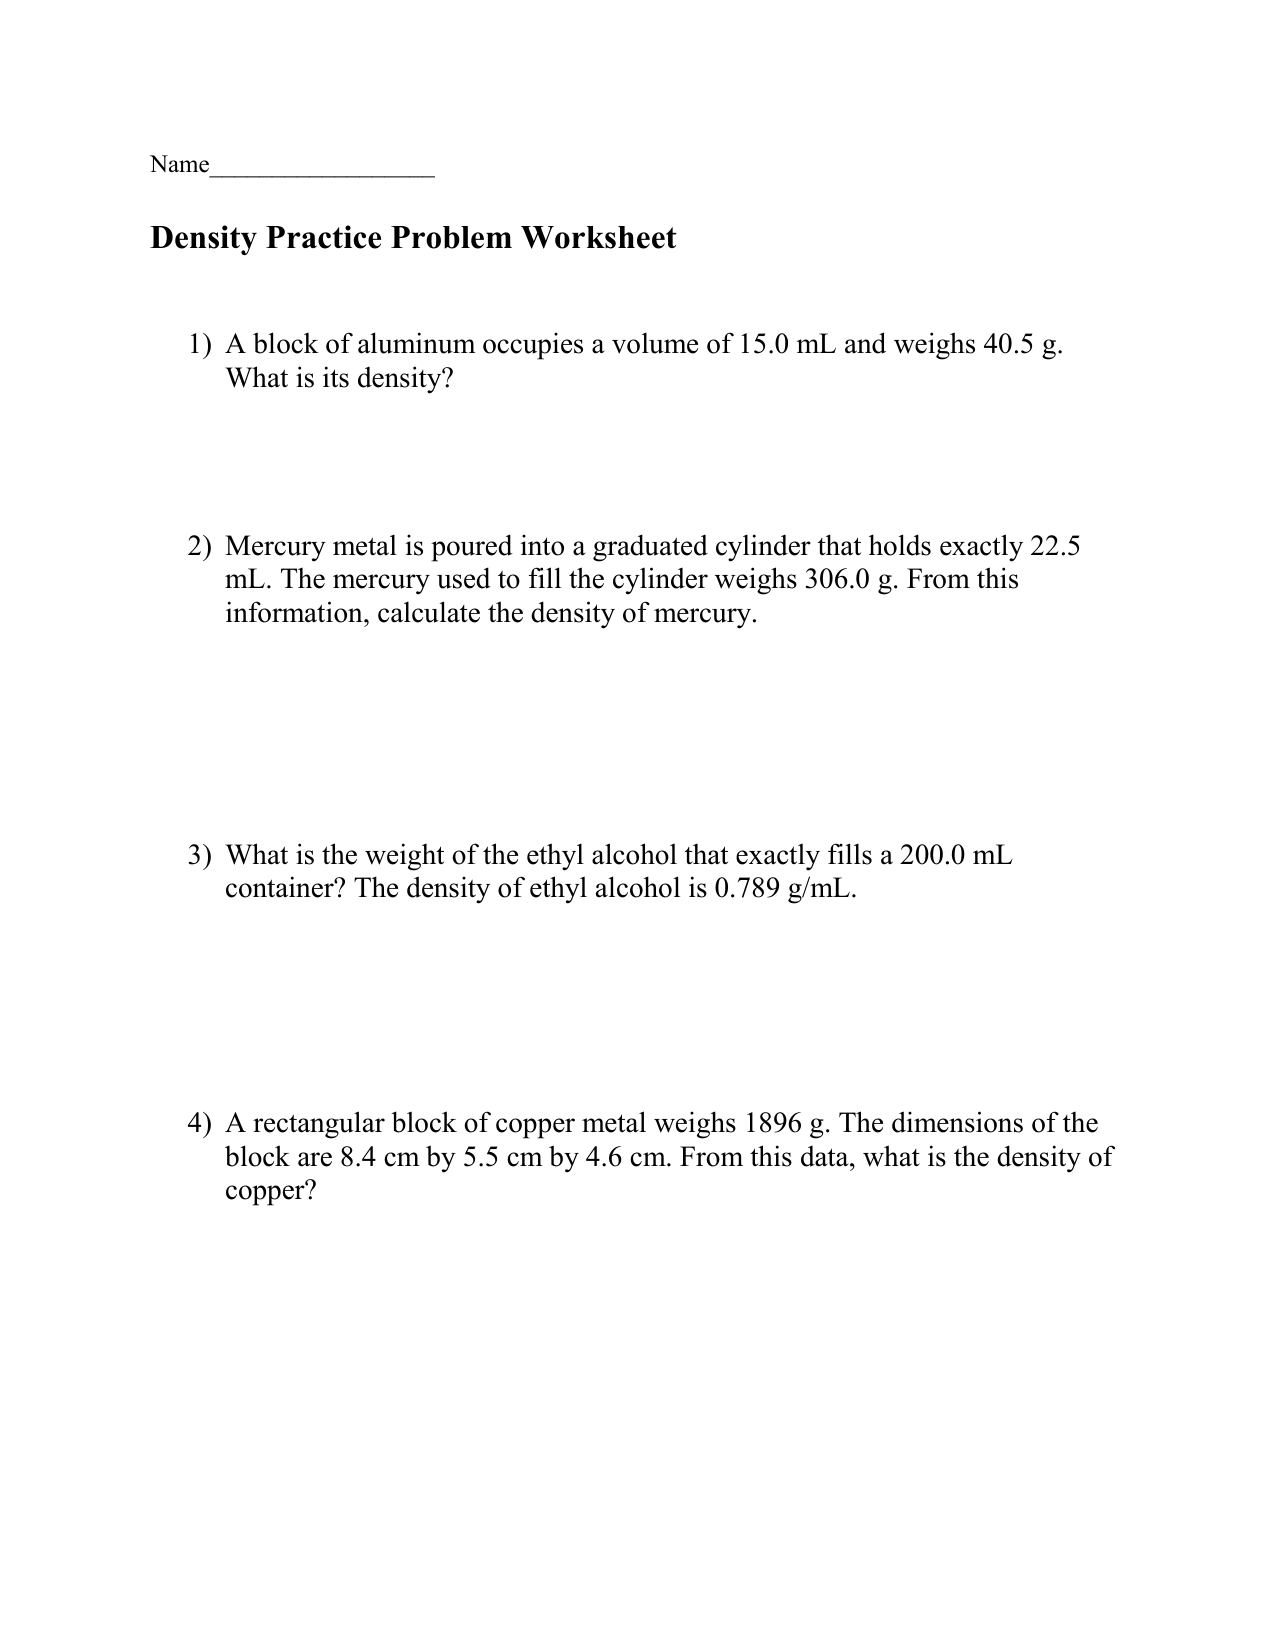 Density Practice Problem Worksheet Answers A Block Of